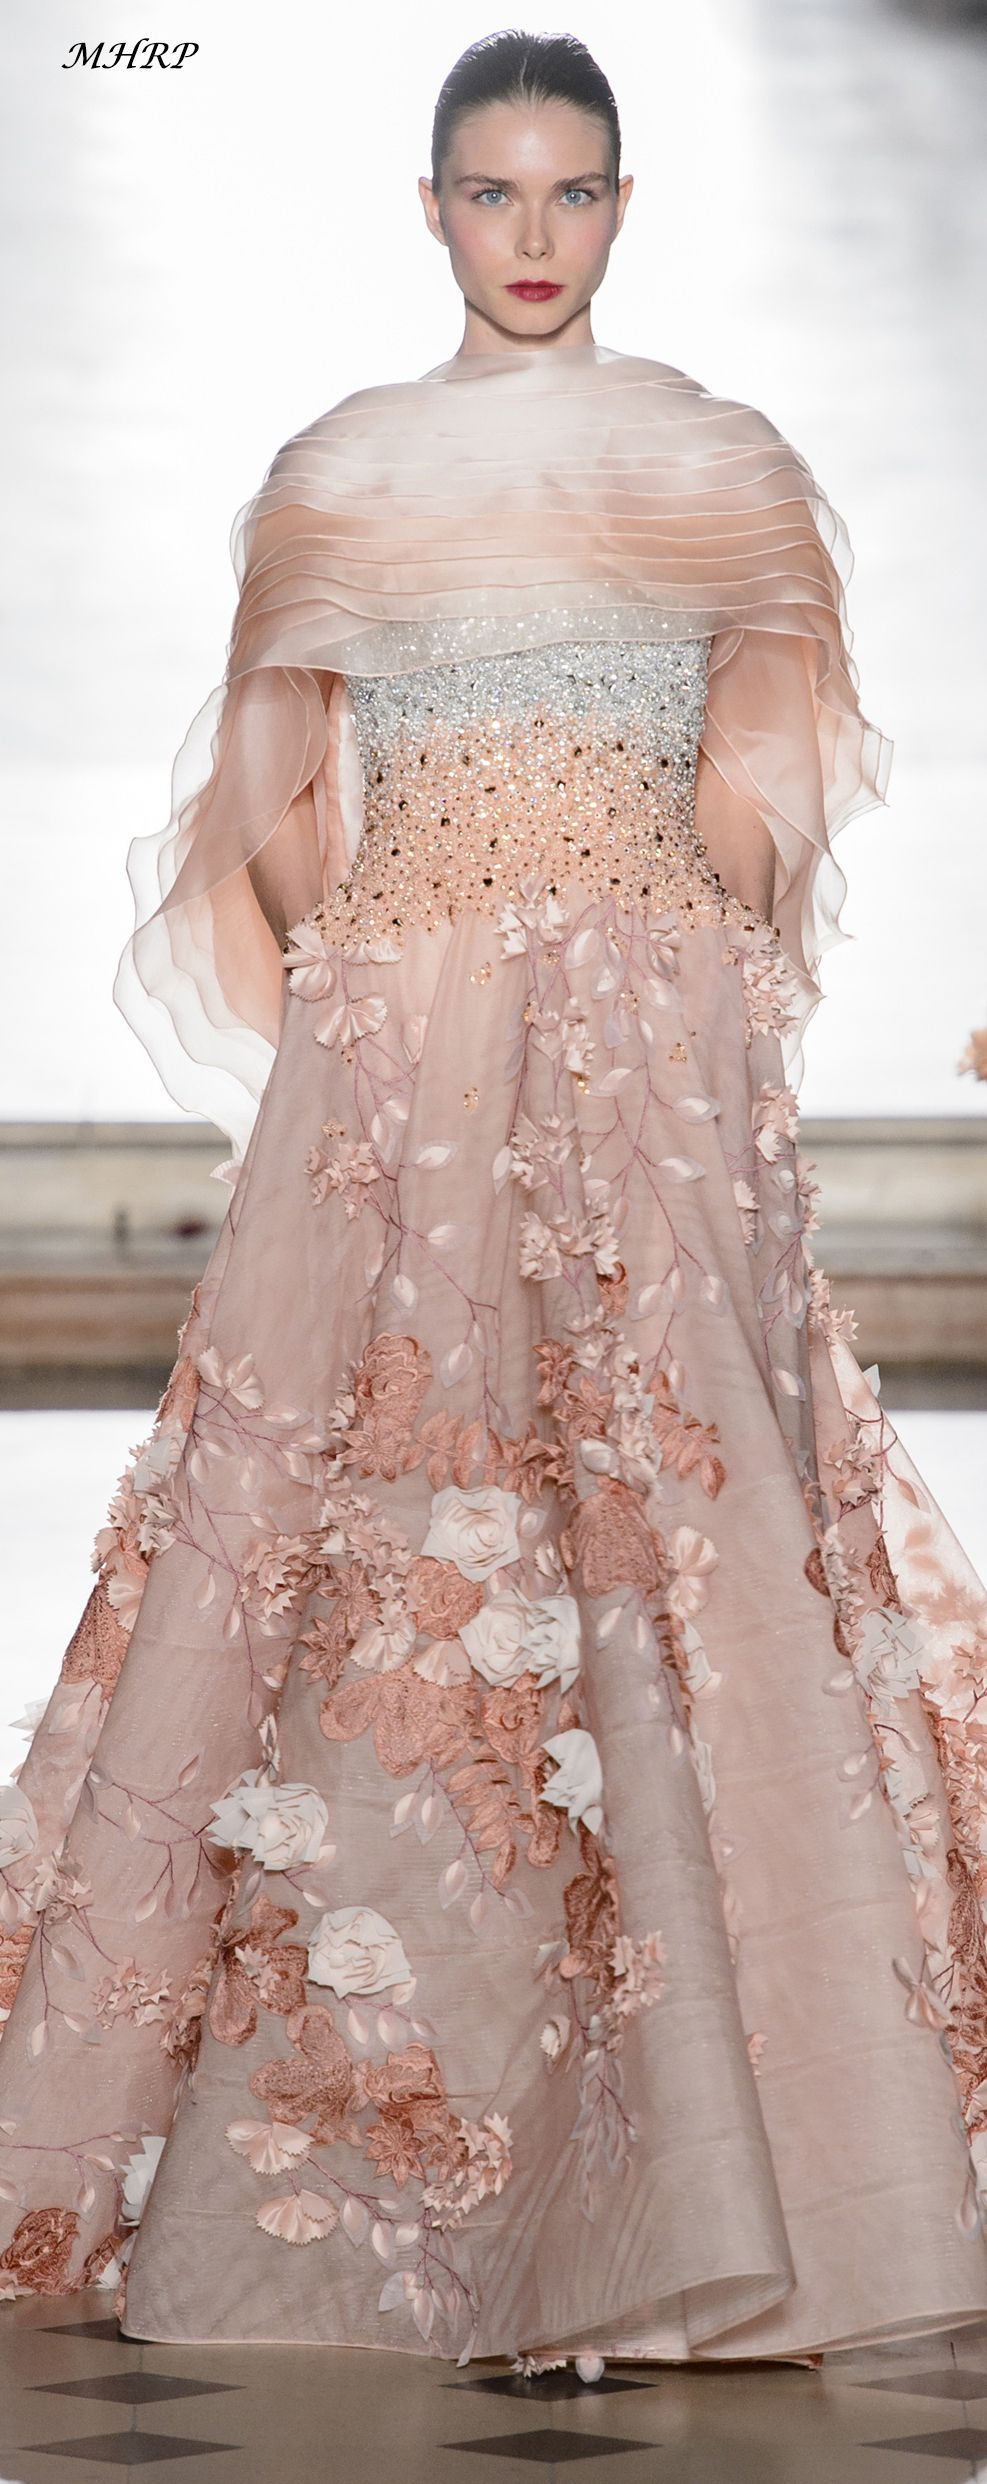 Tony Ward Fall 2017 Couture   The Details...   Pinterest